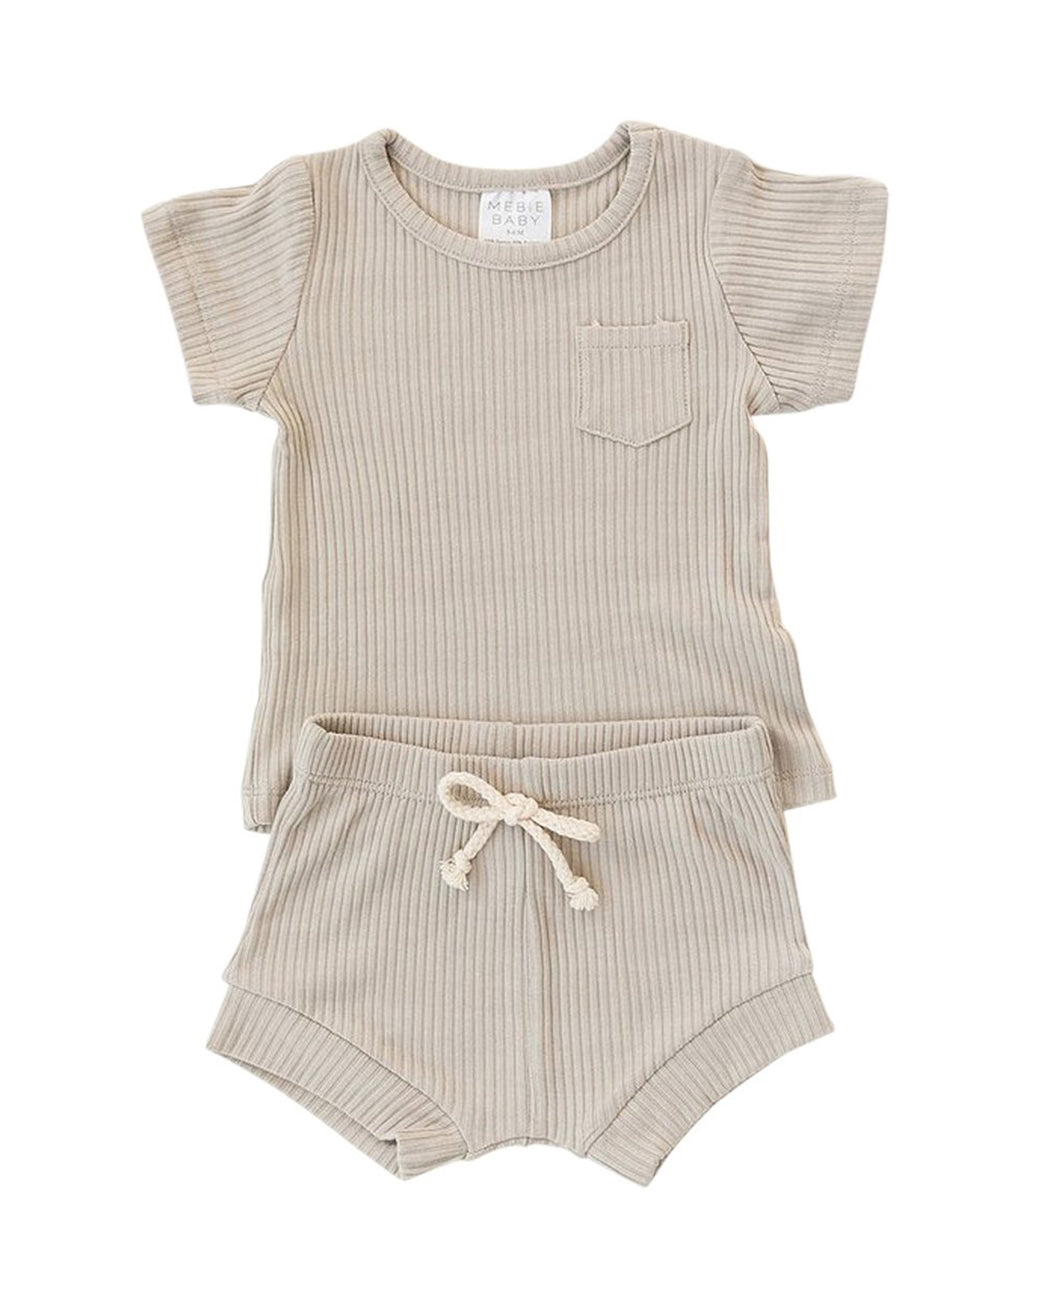 Ribbed Pocket Tee + Shorts Set – Oatmeal